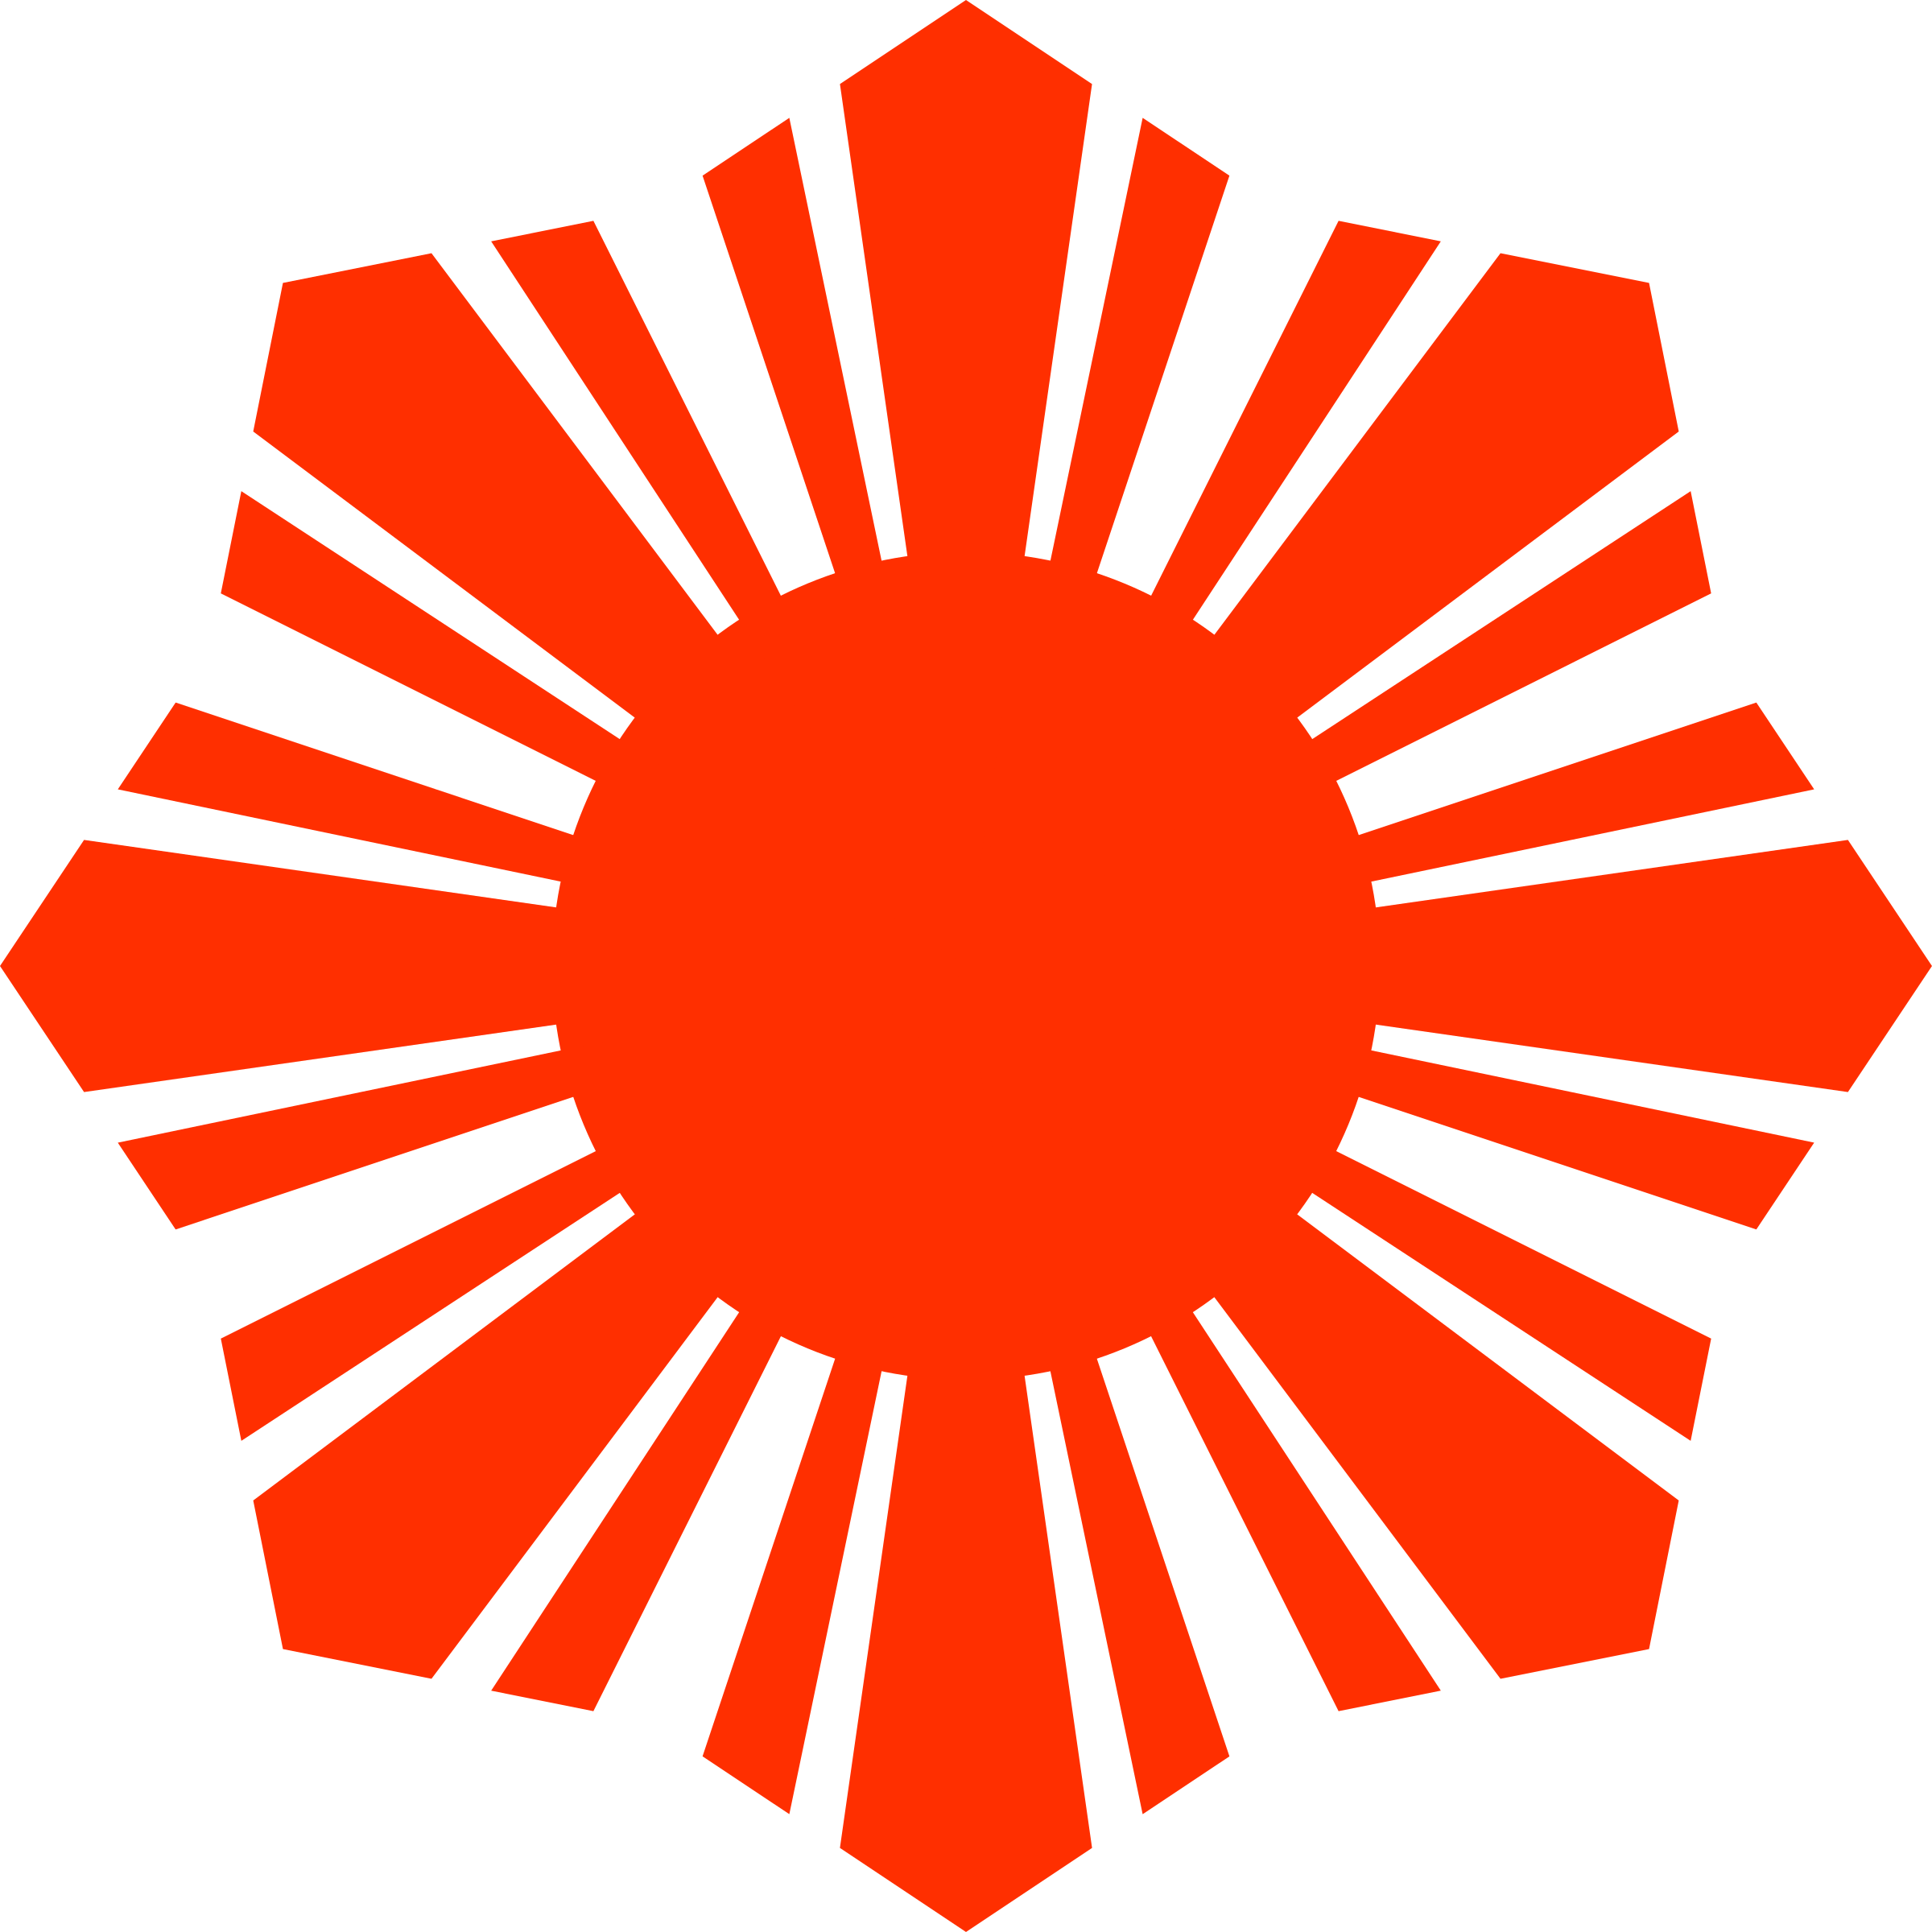 Sun Symbol Red by qubodup